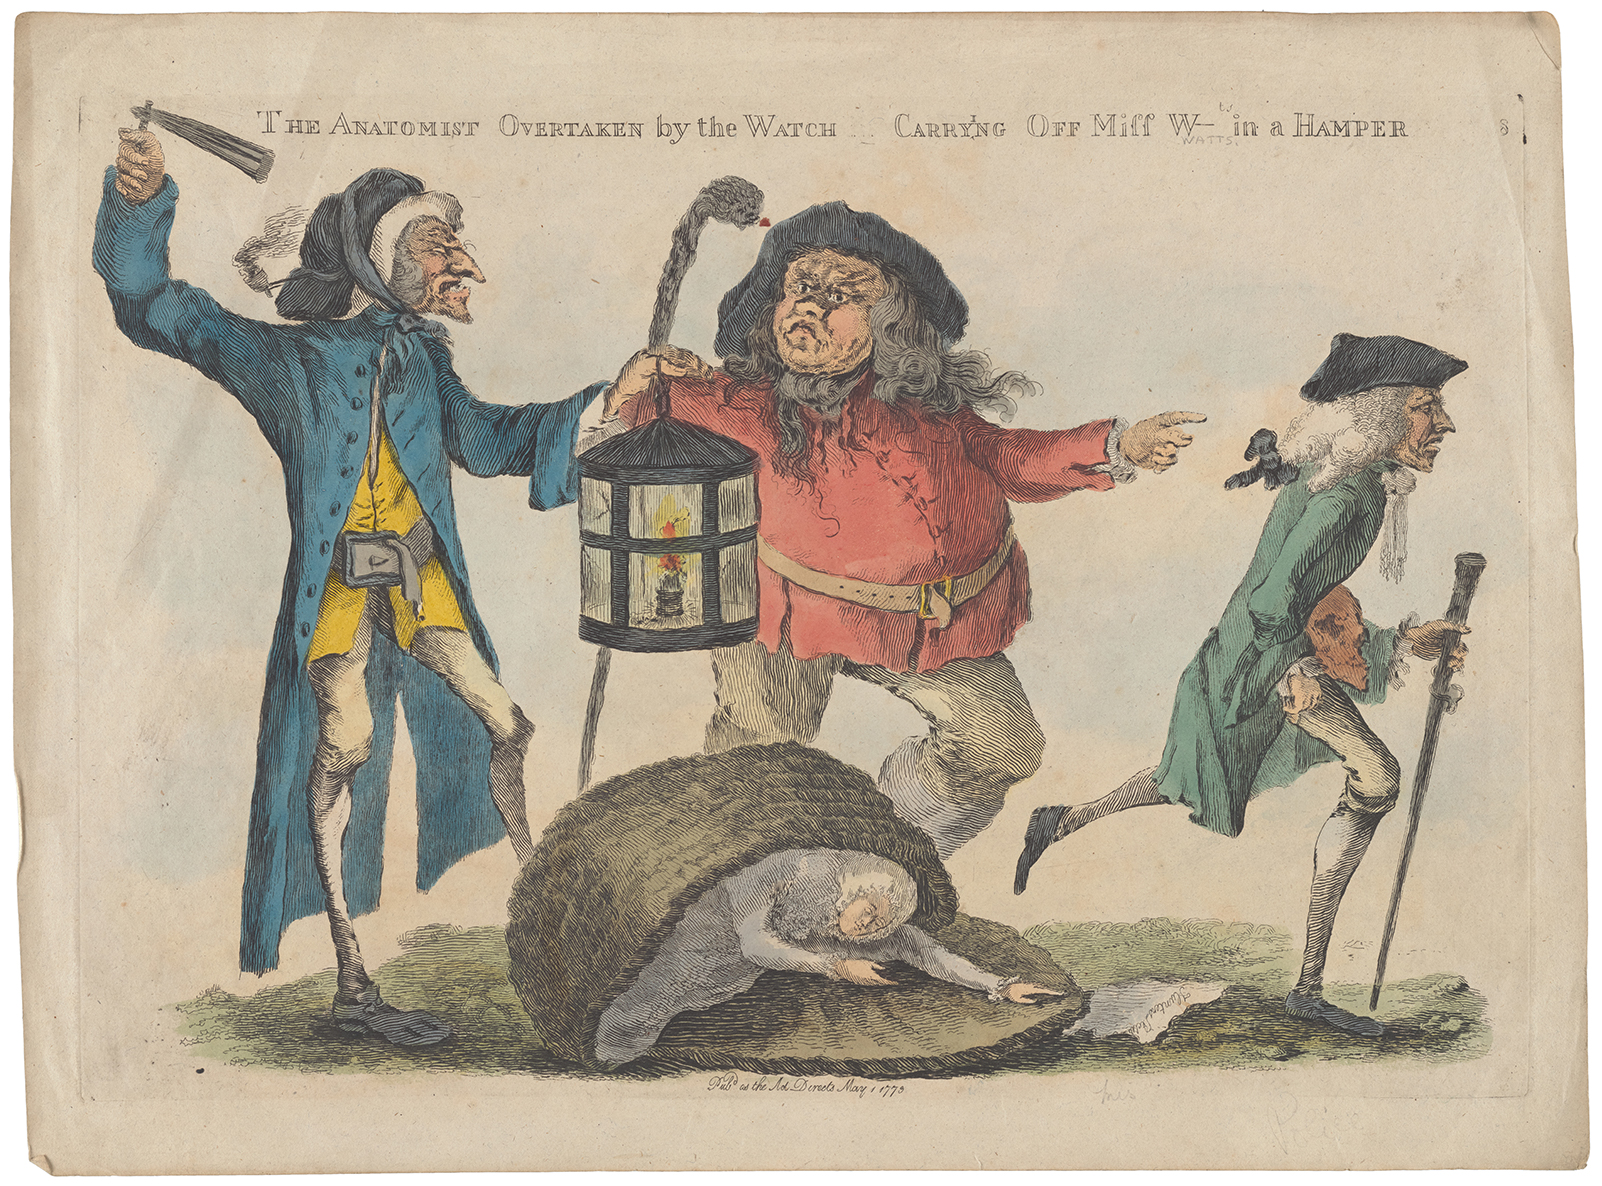 Cartoon of men chasing a grave robber